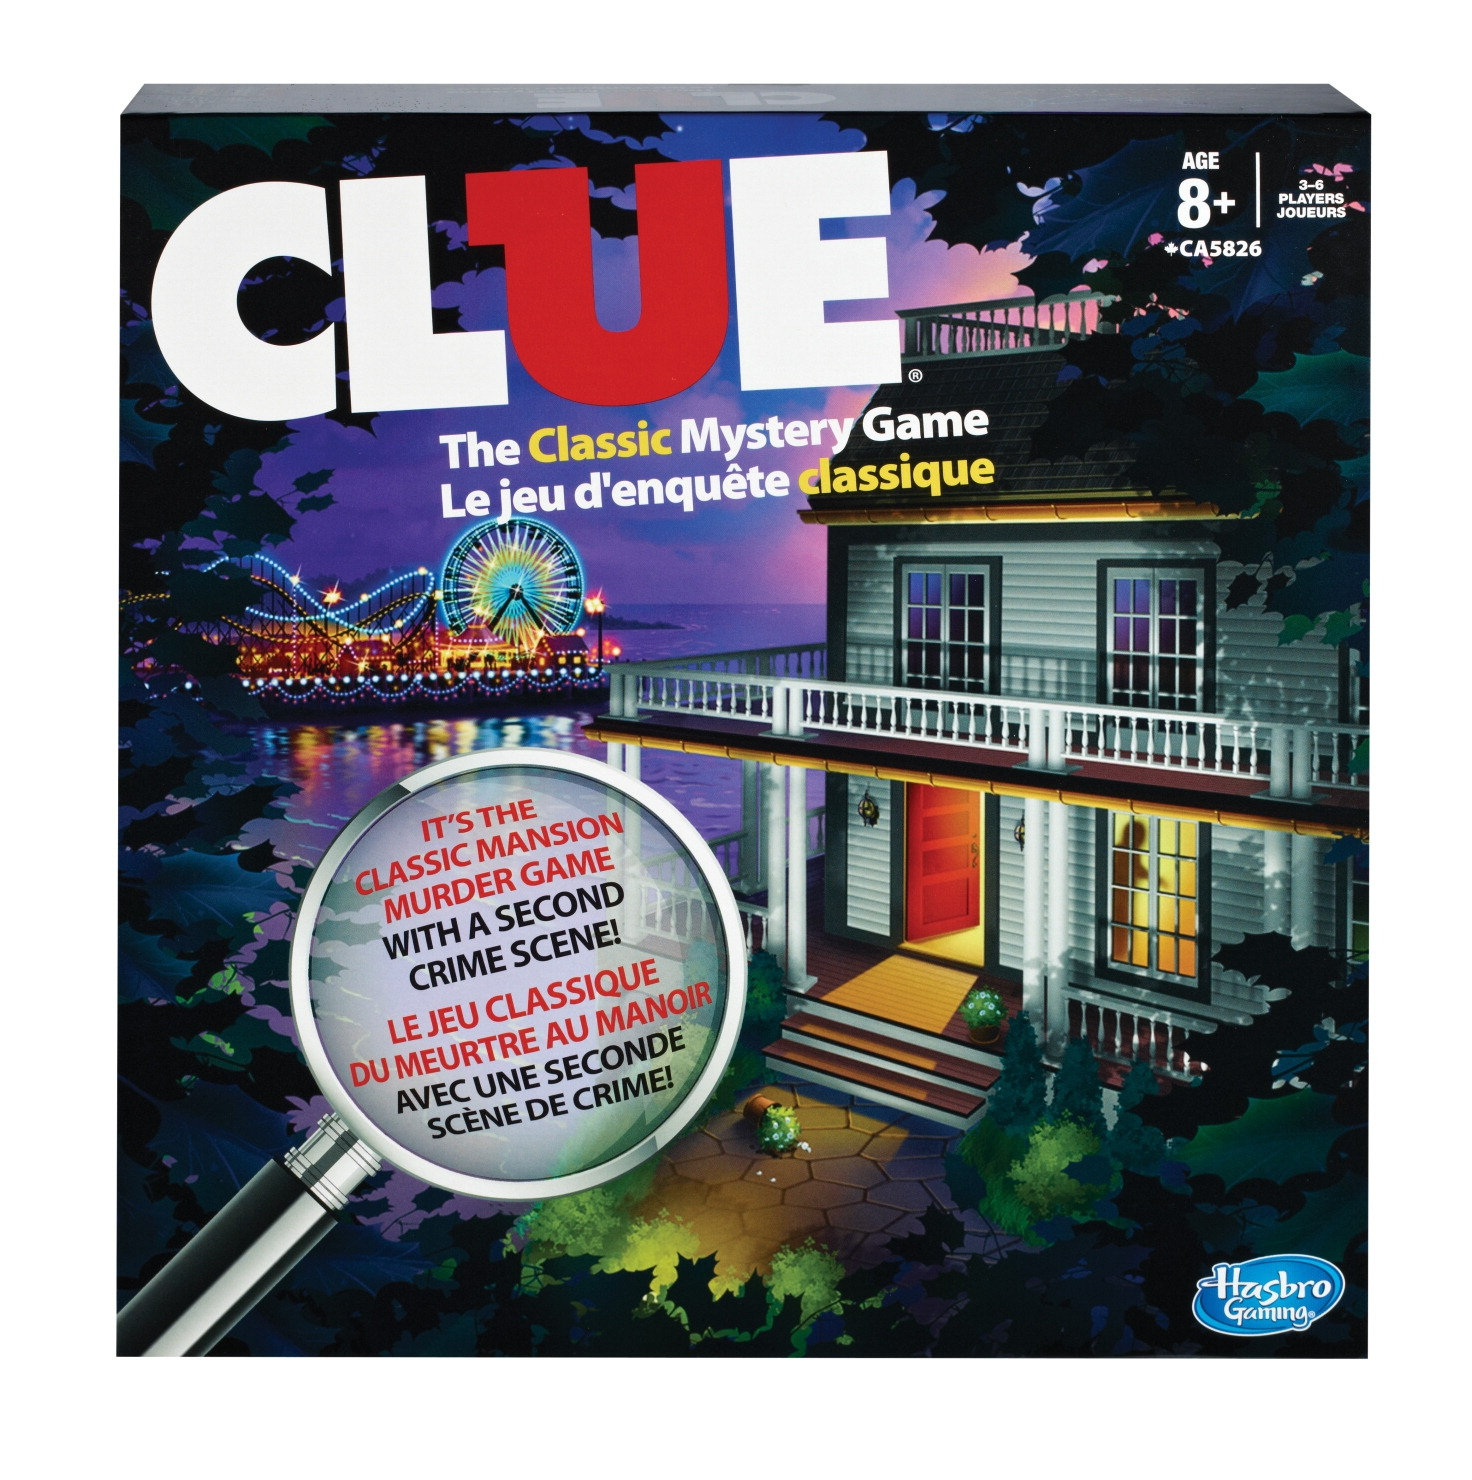 Toys Educational Toys Science & Exploration Sets - 224003 - Hasbro Classic Clue Mystery Game 224003